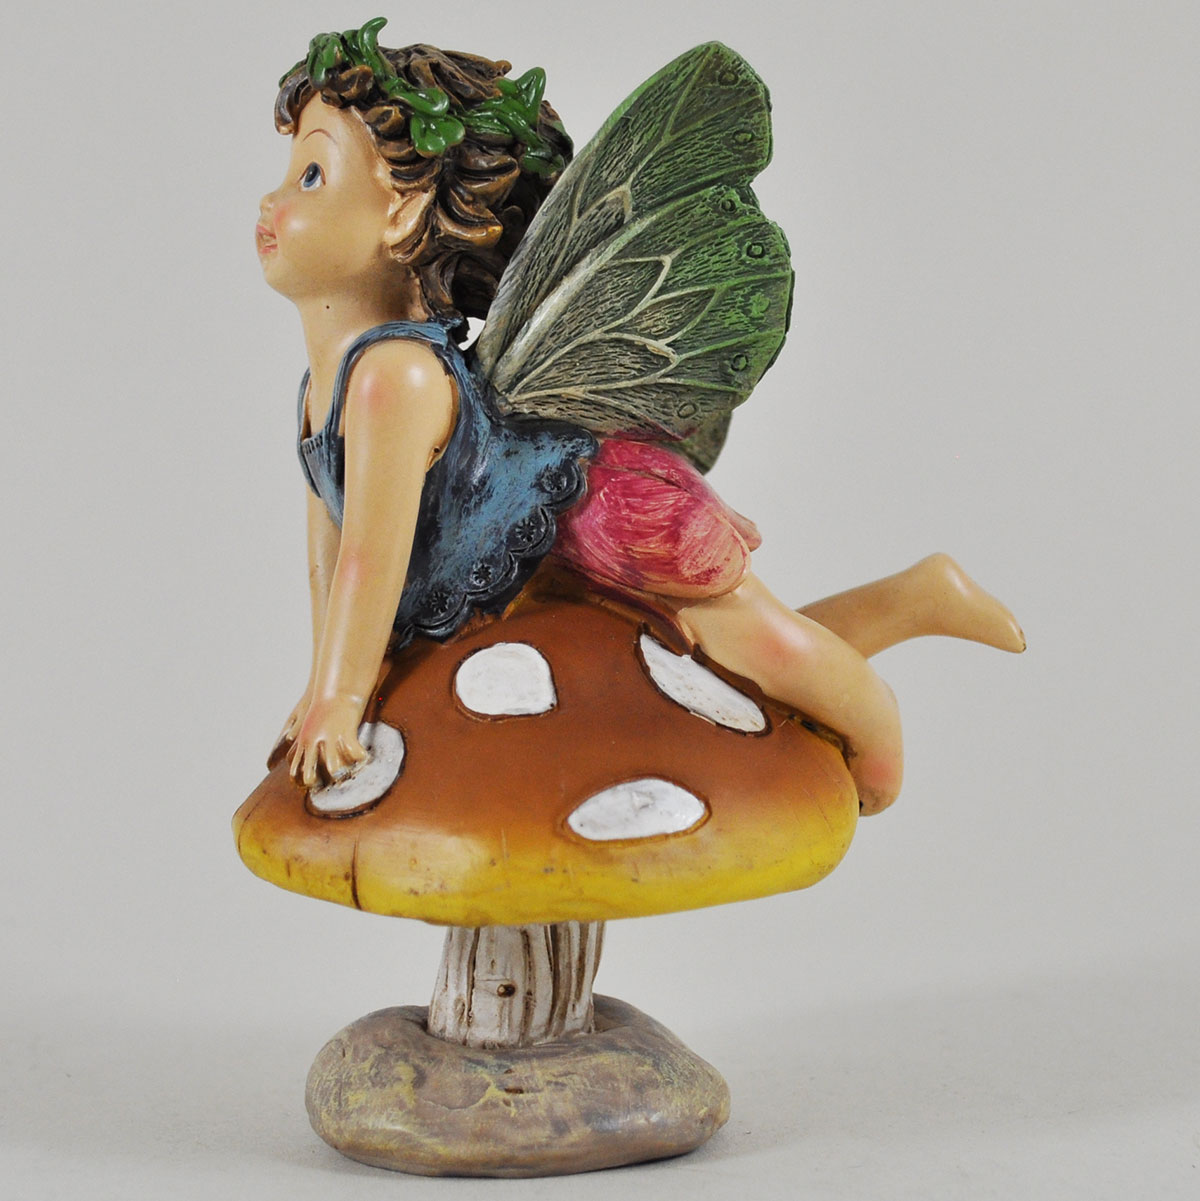 Flower Fairies sitting on mushroomfairygardensukcouk